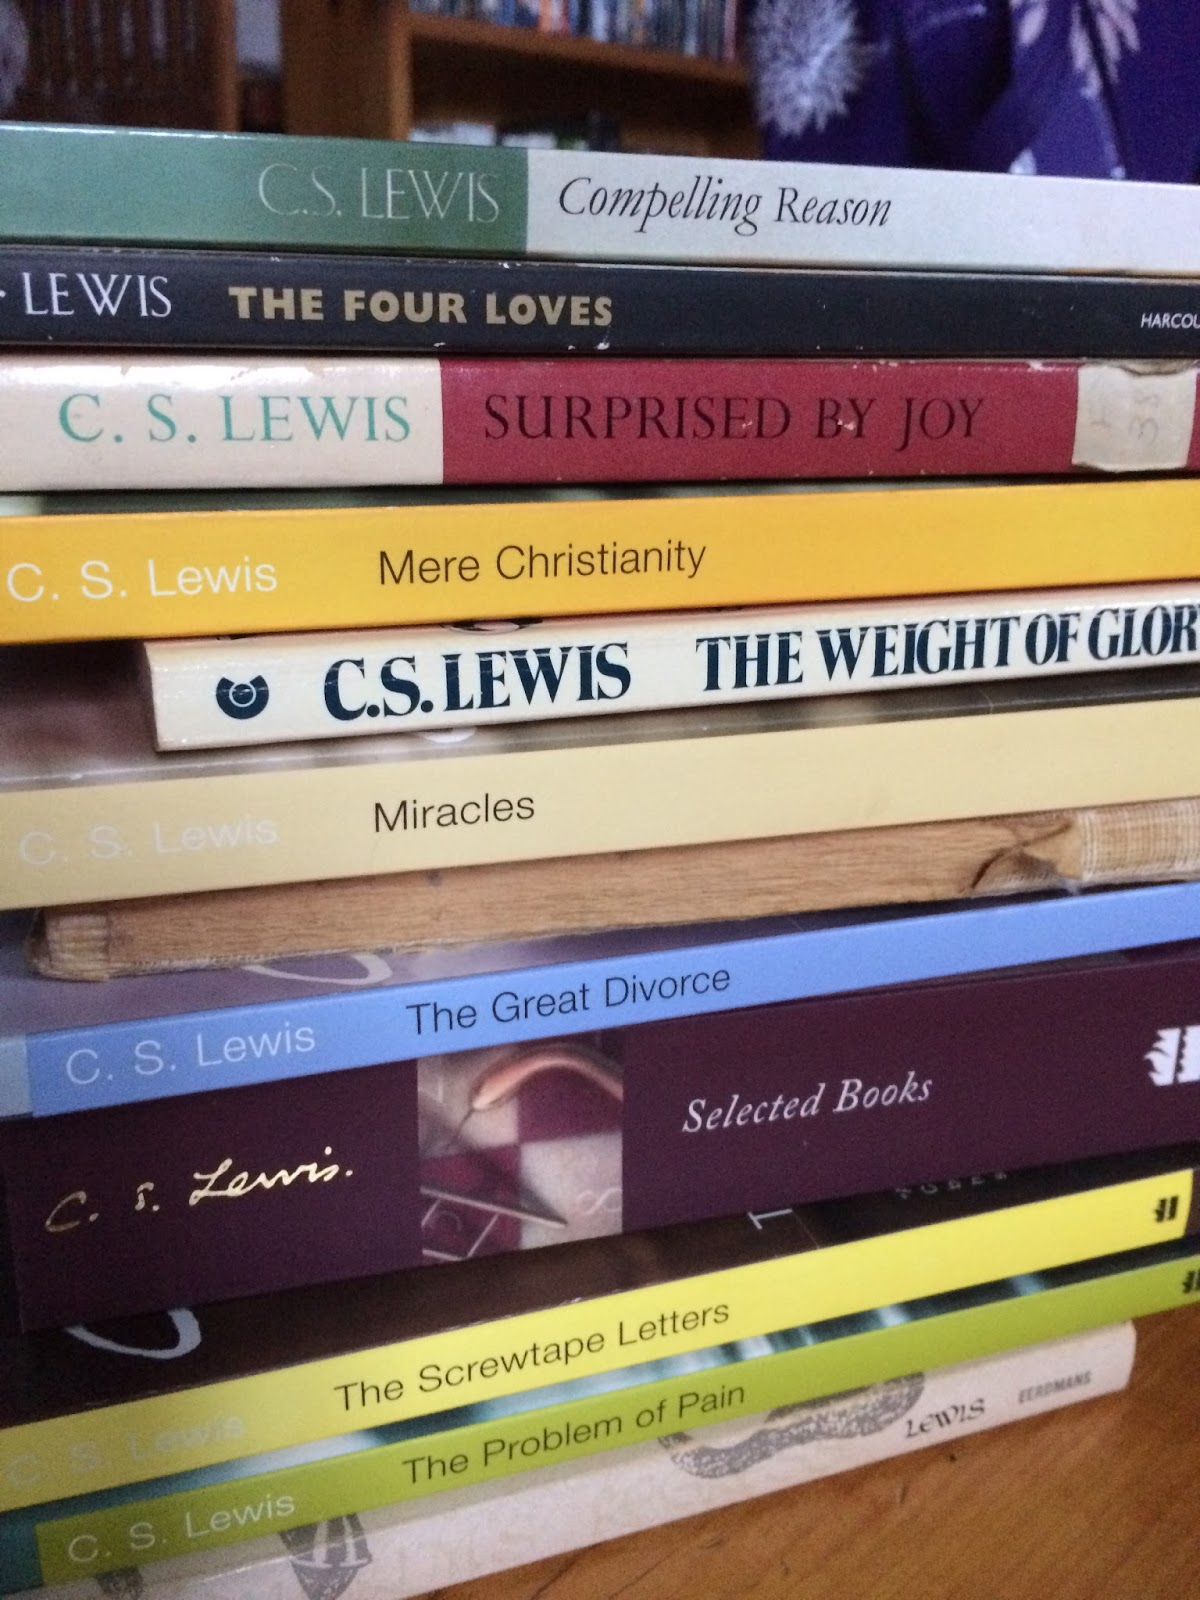 an introduction to the life of c s lewis Irish author cs lewis wrote scholarly books, fictional work about christianity and the fantasy series the chronicles of narnia  learn more at biographycom.